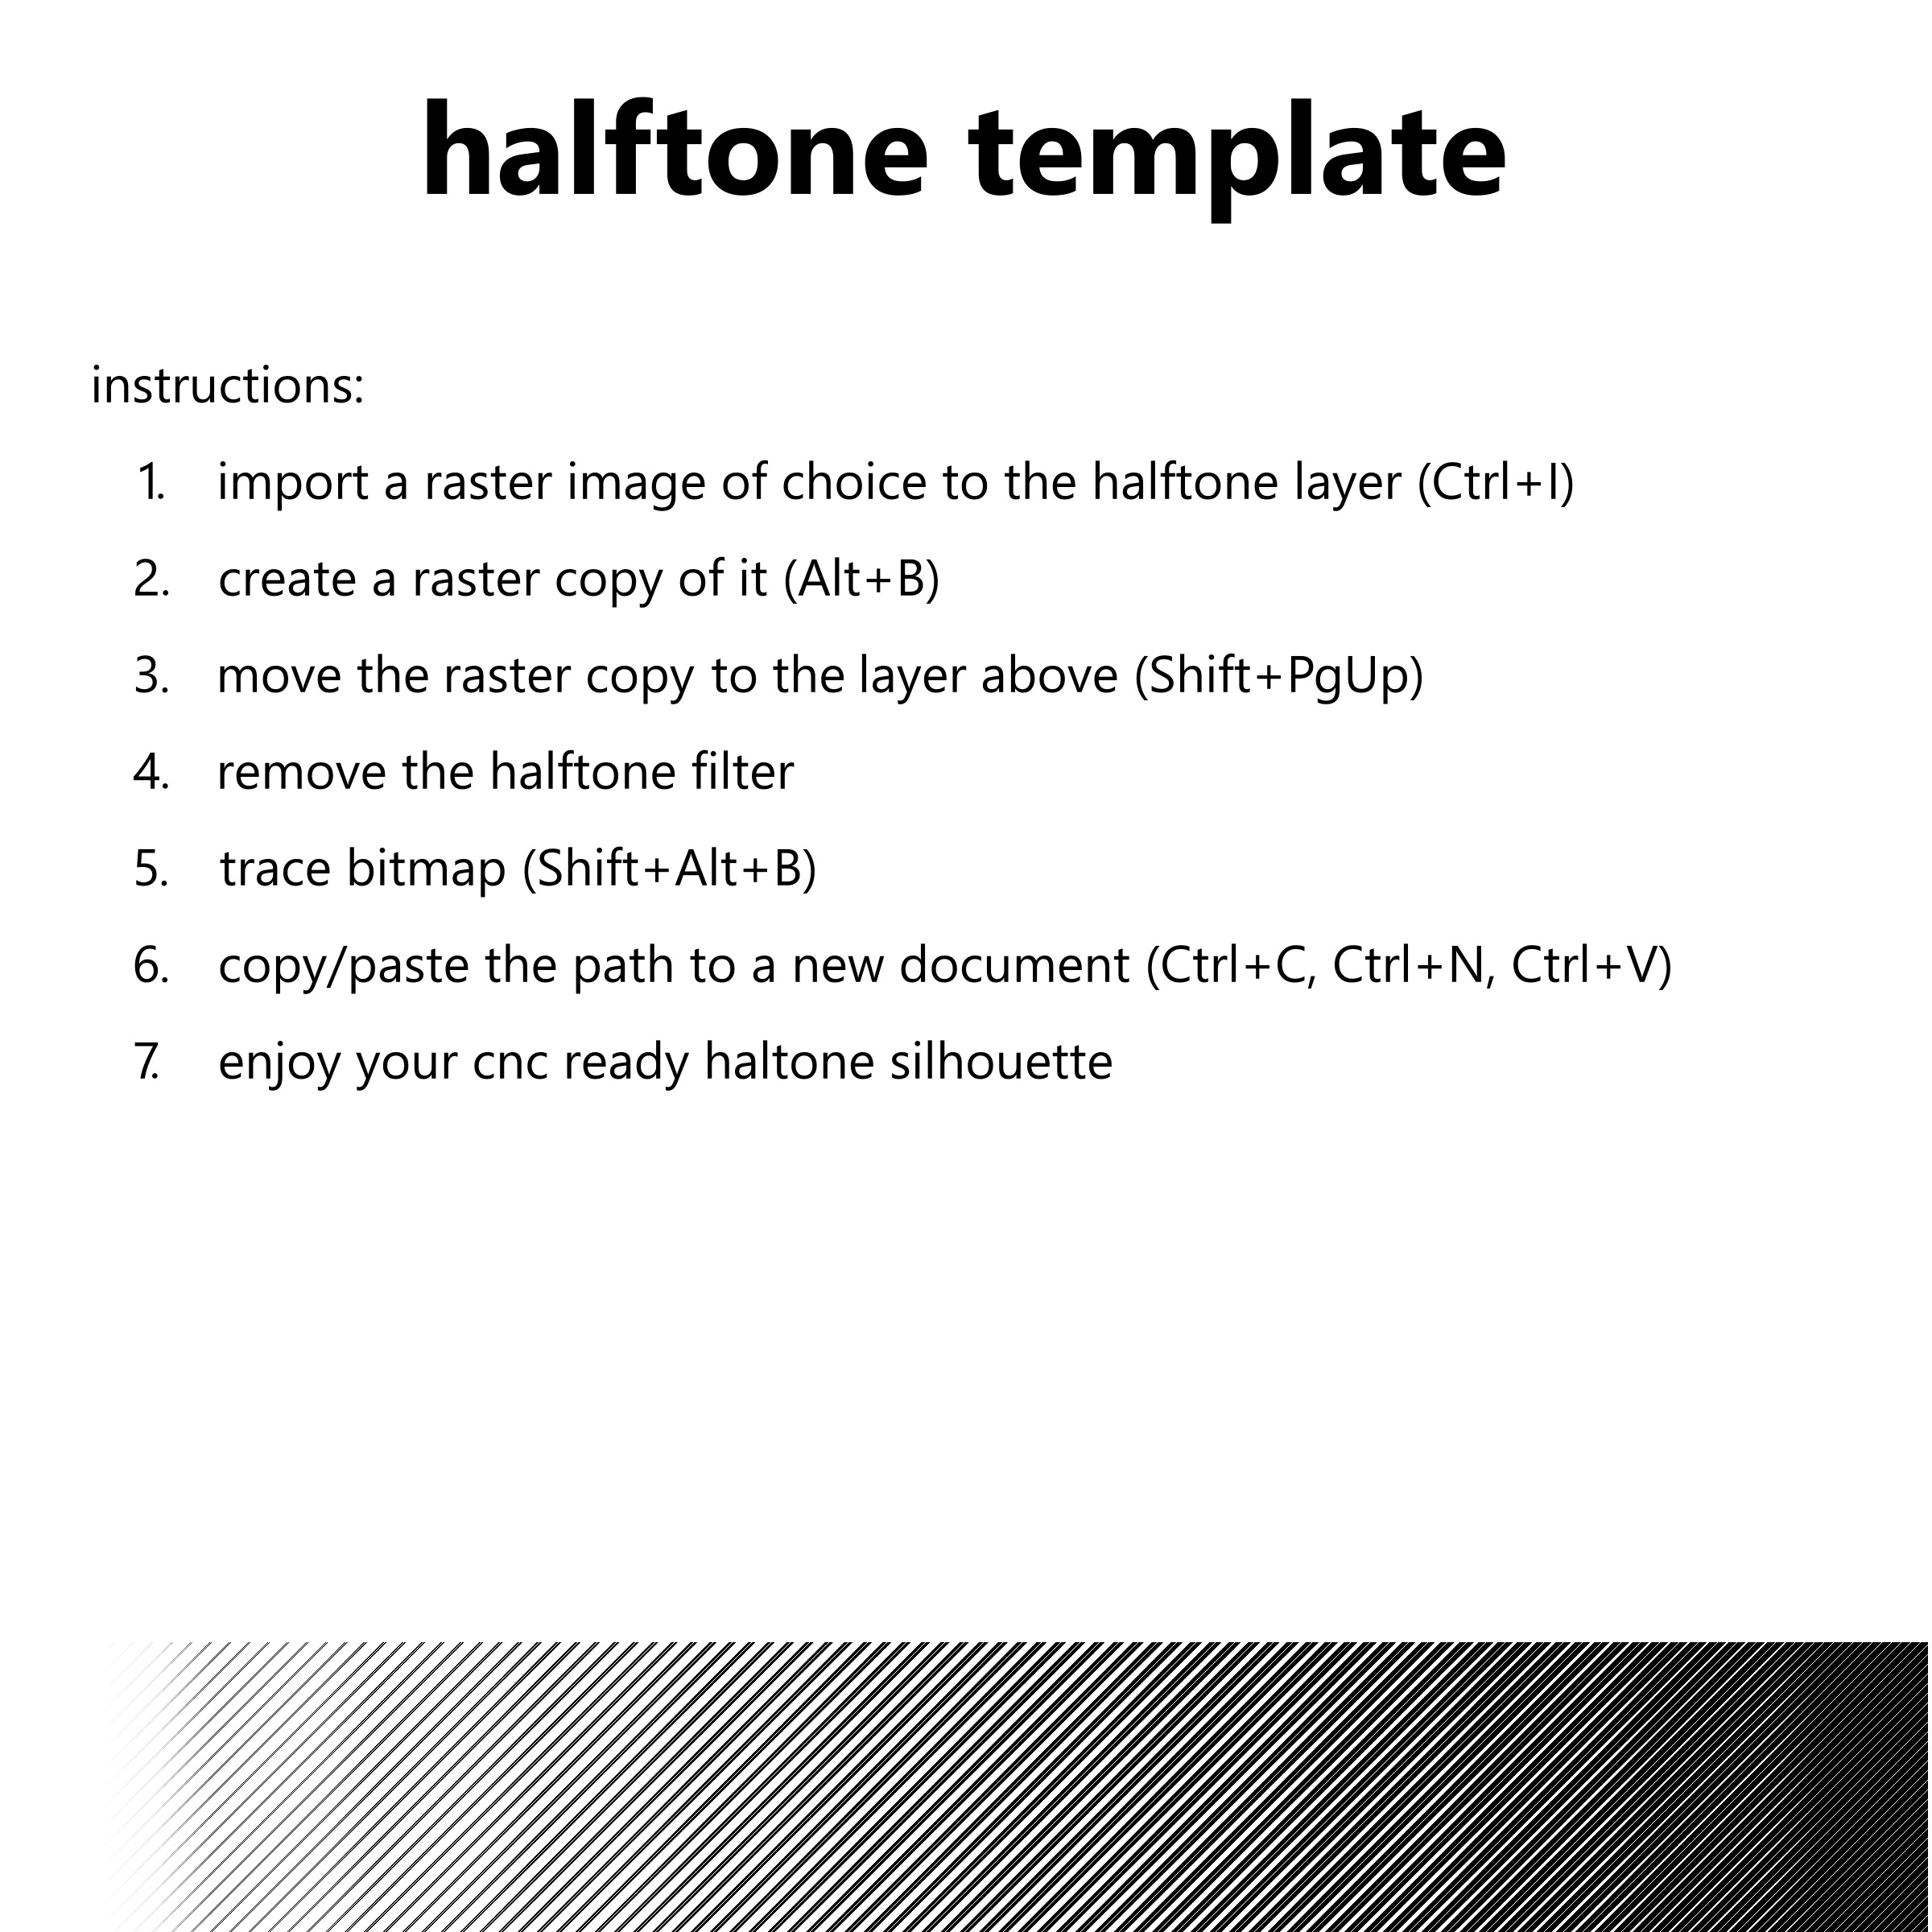 halftone template 2 by Lazur URH